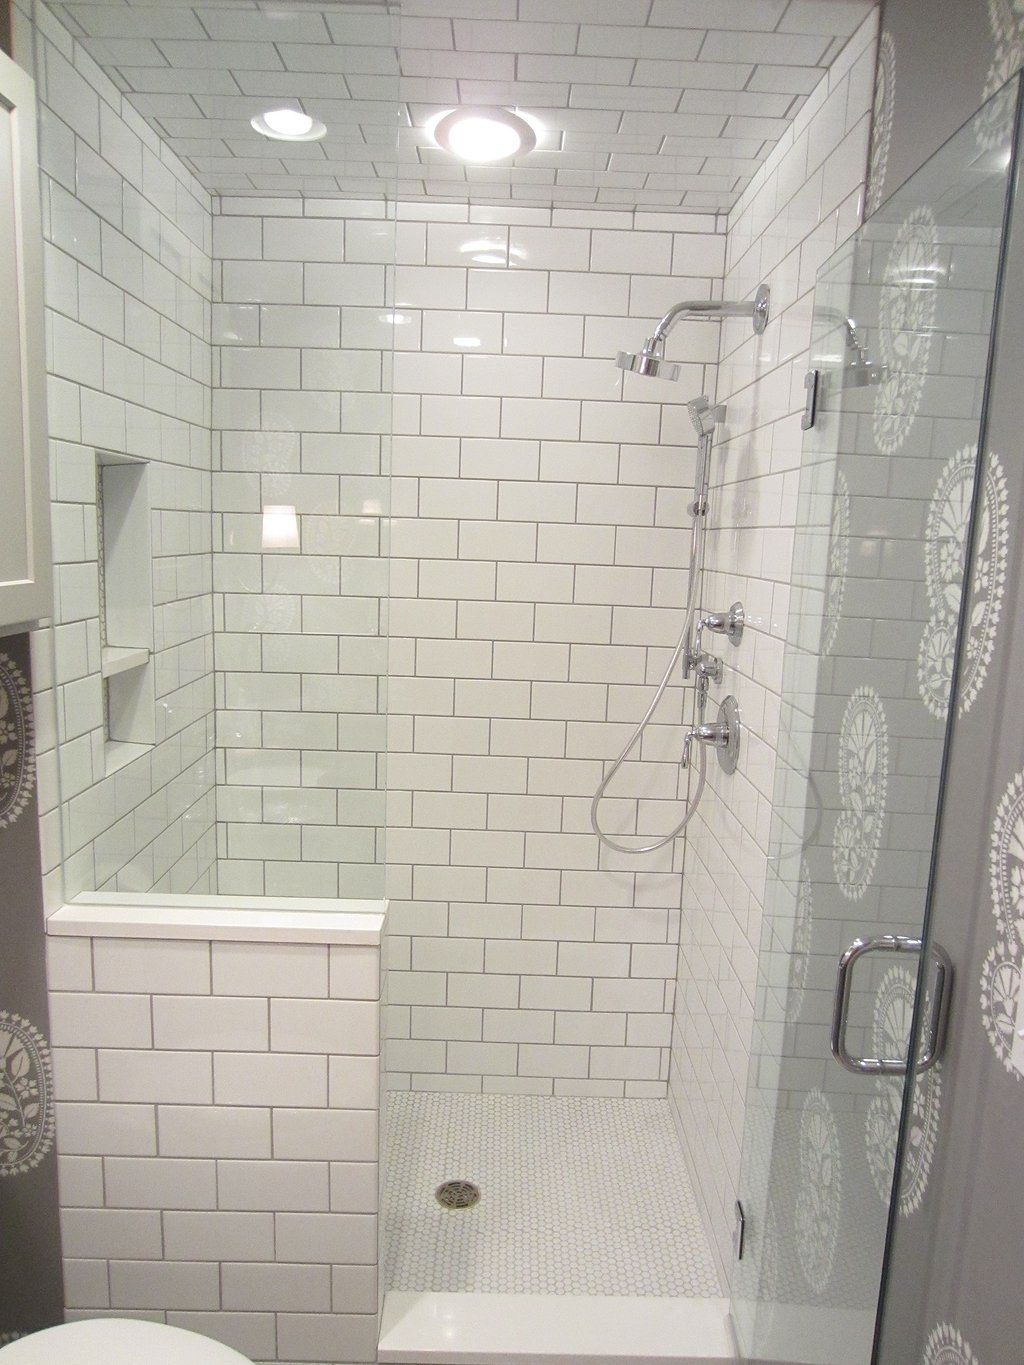 Pin By Holly Mihalovich On Kirby Renovation Half Wall Shower Bathroom Tile Designs Shower Remodel